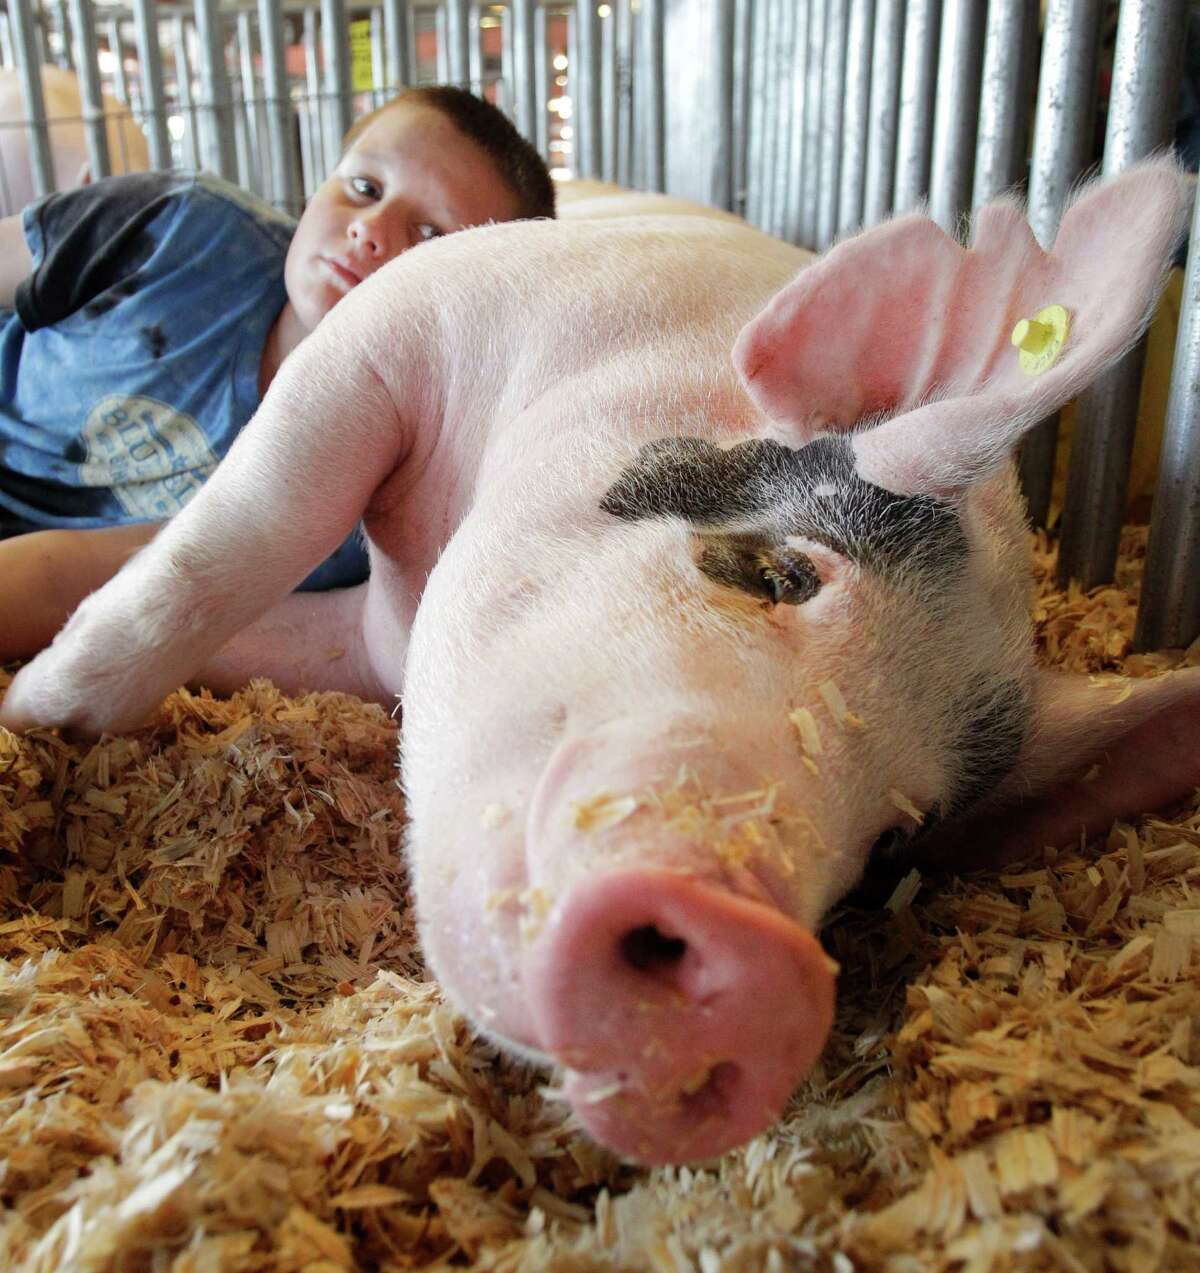 Trenton Steinfeld, 10, of Rosenberg uses his brother's pig named Diesel as a pillow at the Fort Bend County Fair & Rodeo, 4310 Hwy. 36 South in Rosenberg Sunday, Sept. 28, 2014, in Rosenberg. Diesel will be shown by Trenton's nine-year-old brother, Landon Steinfeld. Both of the boys are members of the B.F. Terry FFA. The Fort Bend County Fair & Rodeo continues through Oct. 5. ( Melissa Phillip / Houston Chronicle )